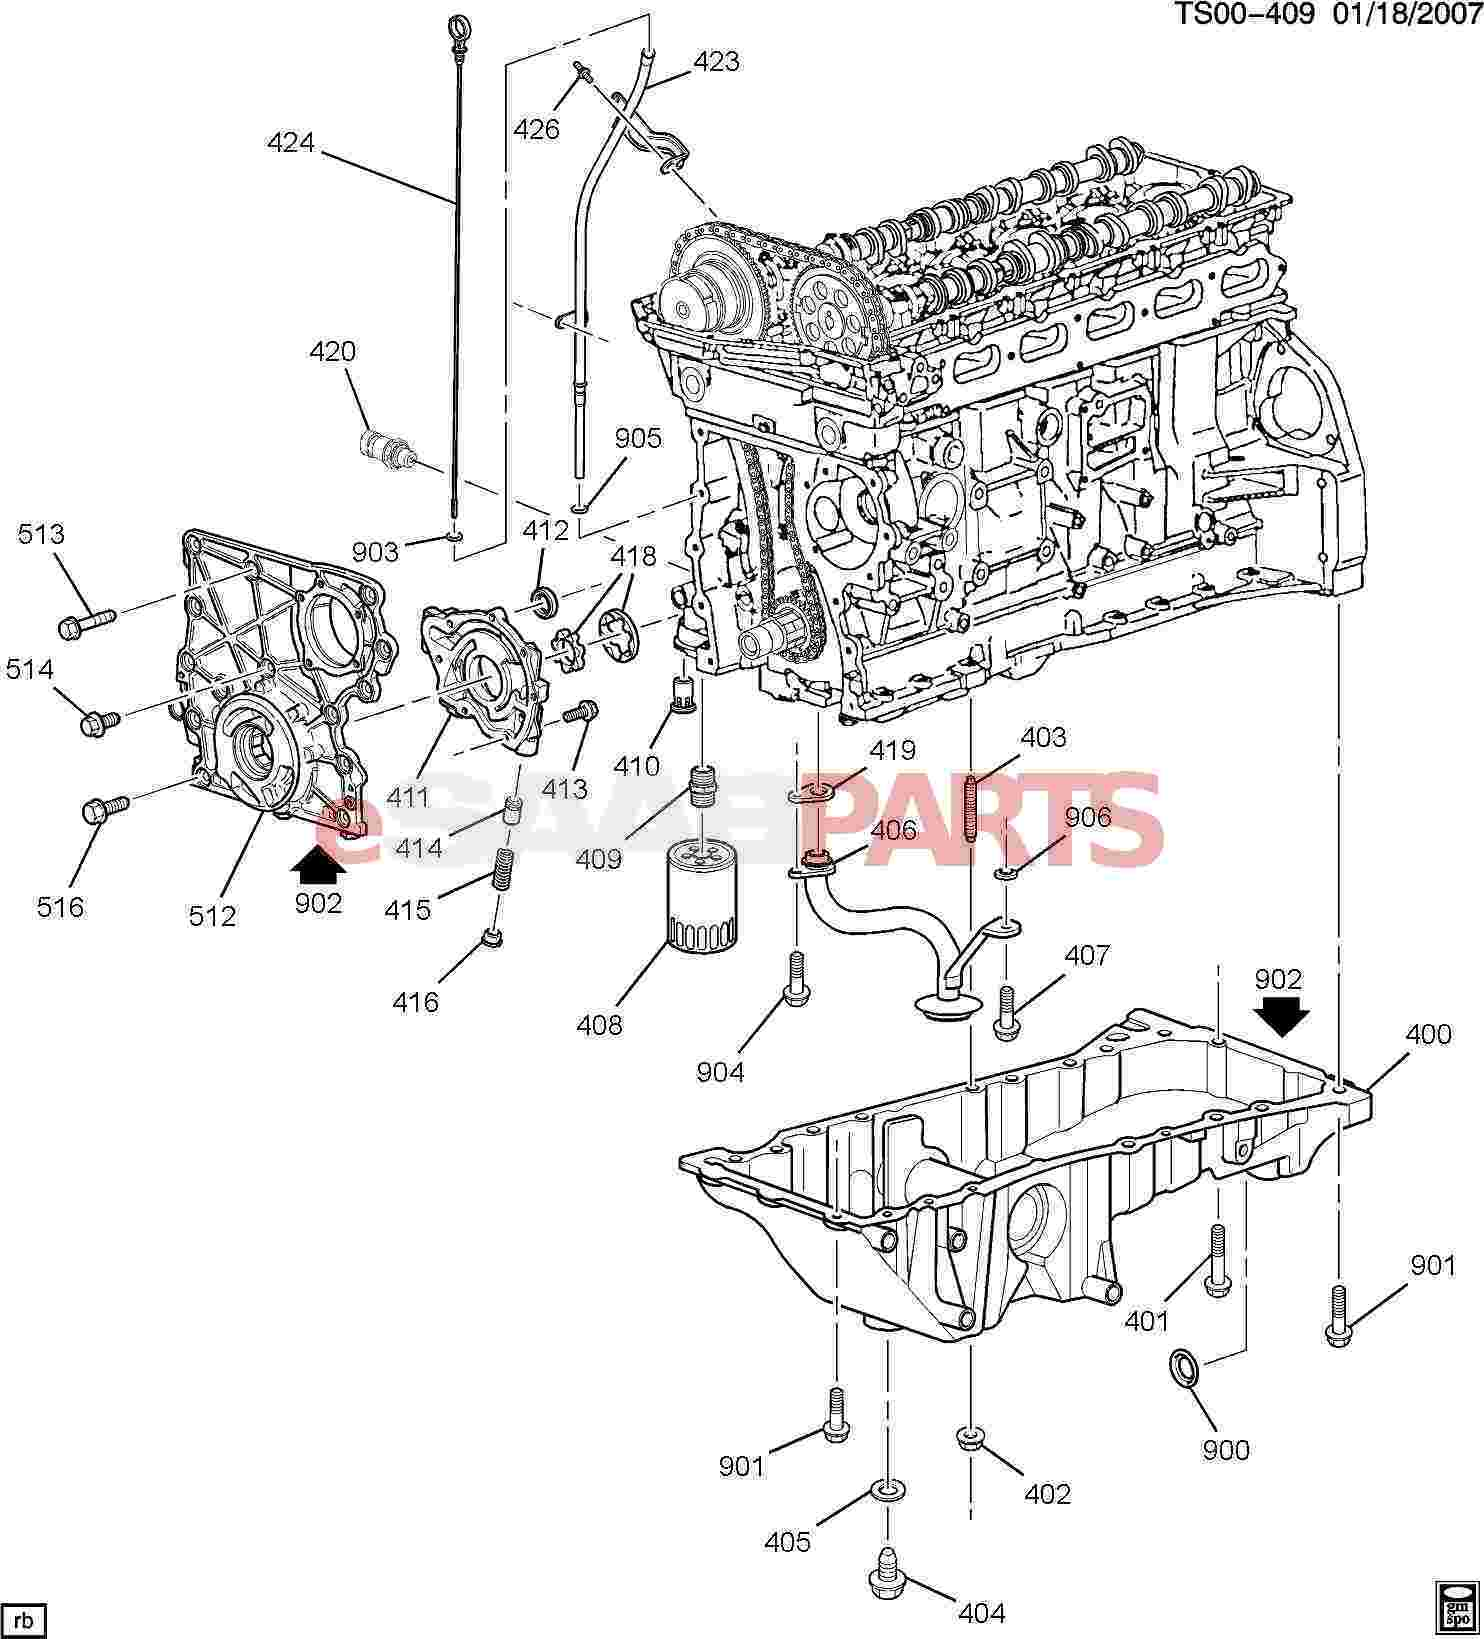 95783 12601932] saab cover, engine front genuine saab parts from ox66 oil pump wiring diagram at bayanpartner.co